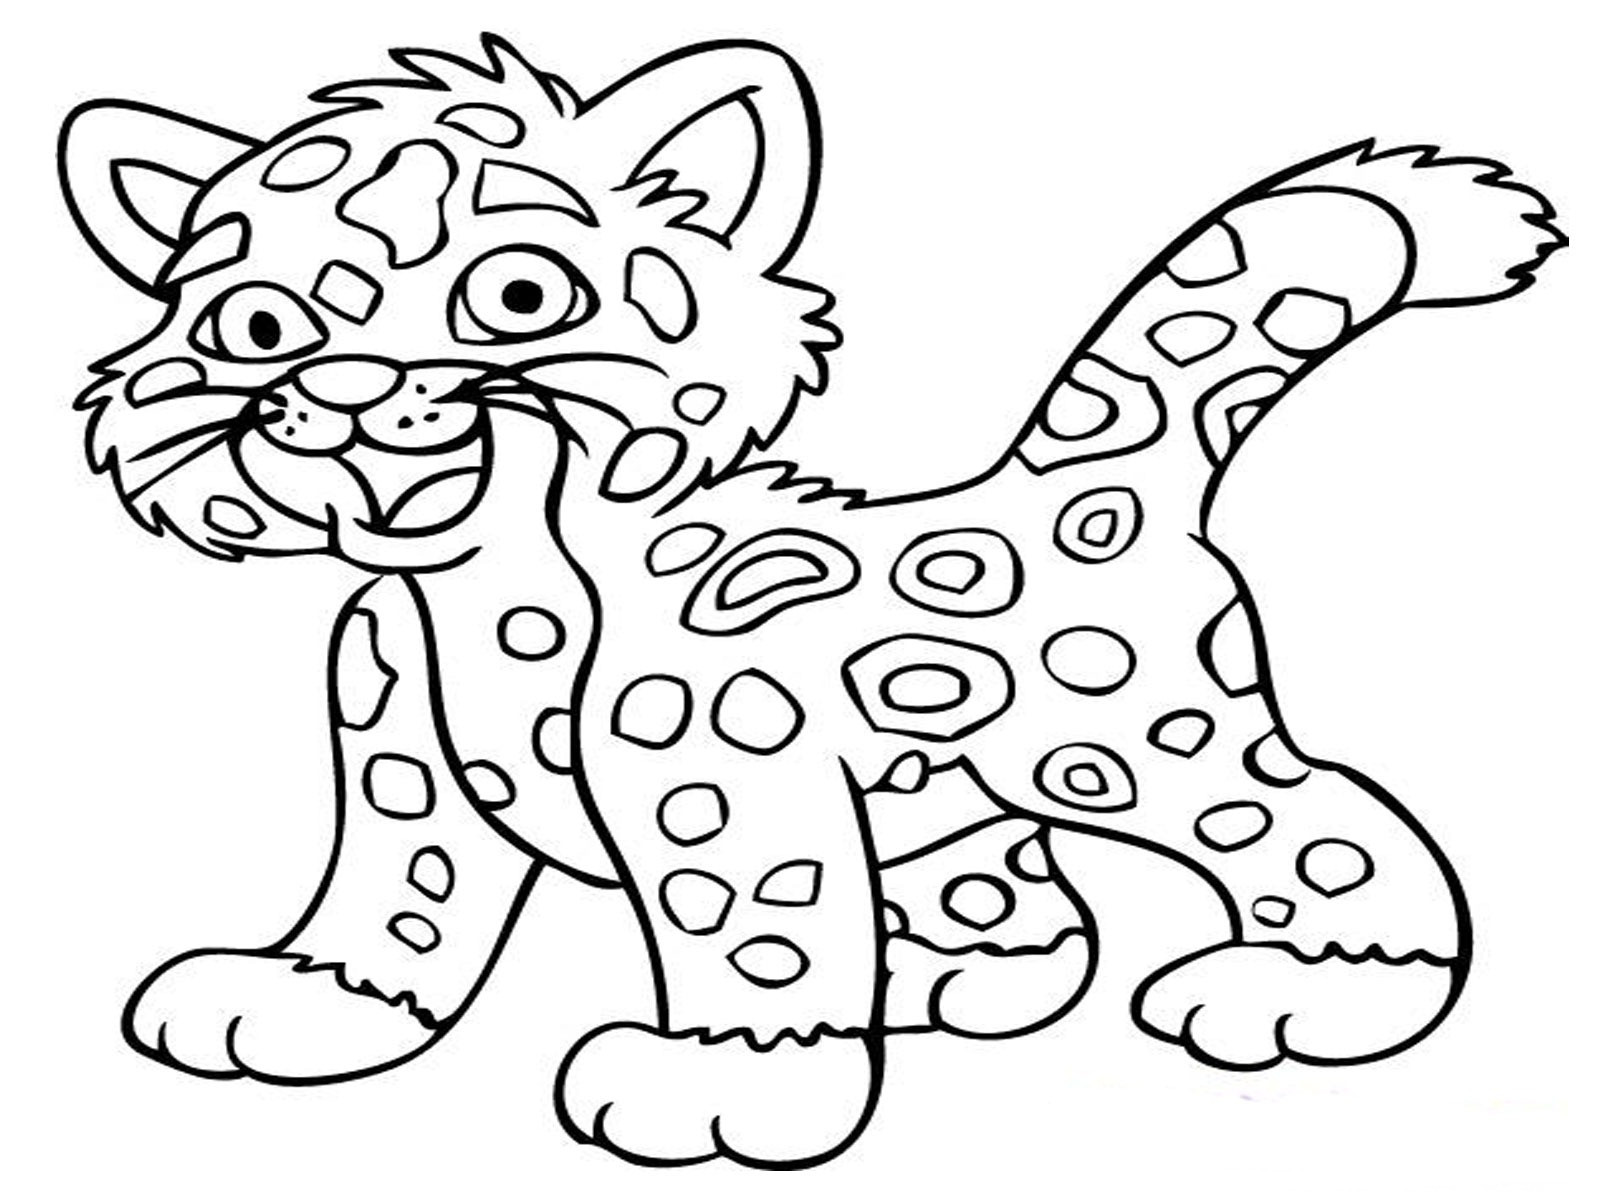 Best ideas about Animal Free Printable Coloring Sheets . Save or Pin Animal Coloring Pages 9 Now.